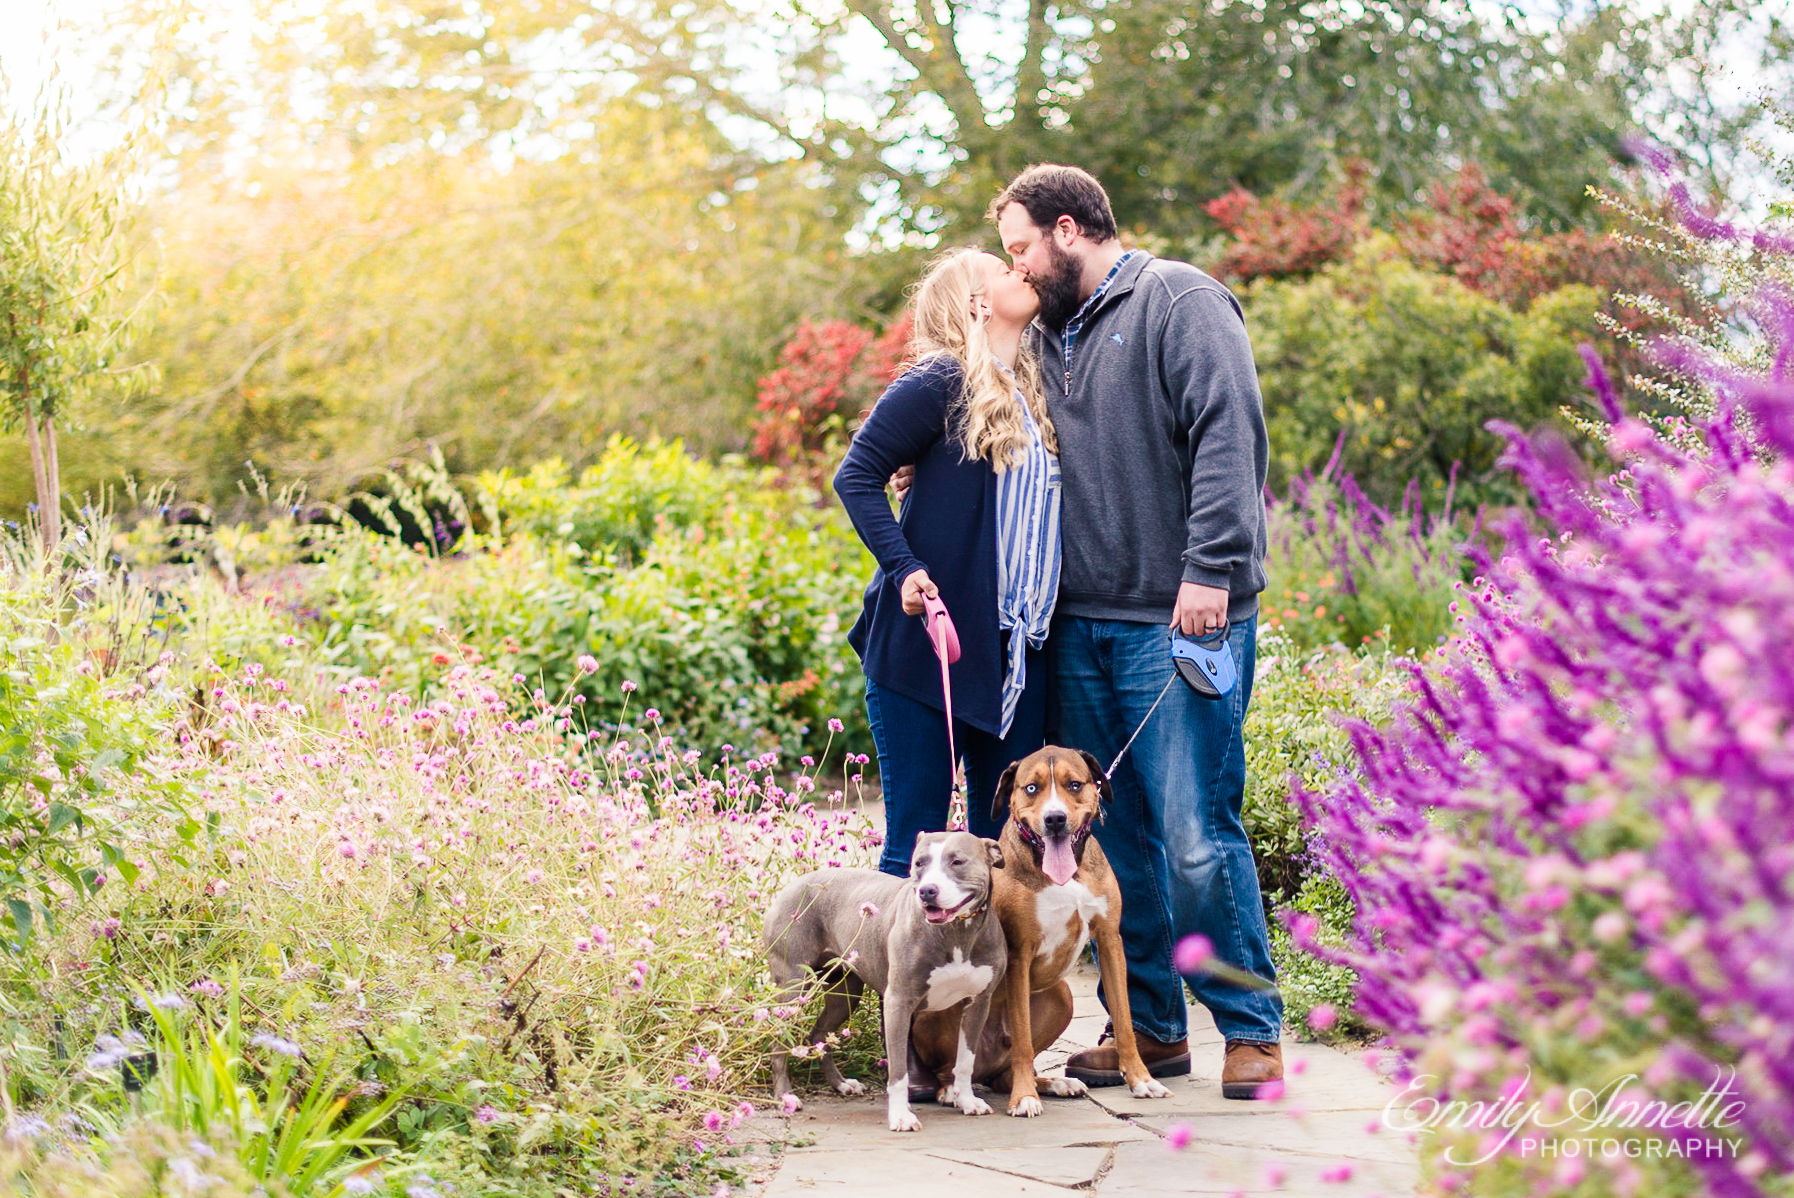 A couple kissing while holding their two dogs in the garden at Green Spring Gardens Park in Fairfax, Virginia